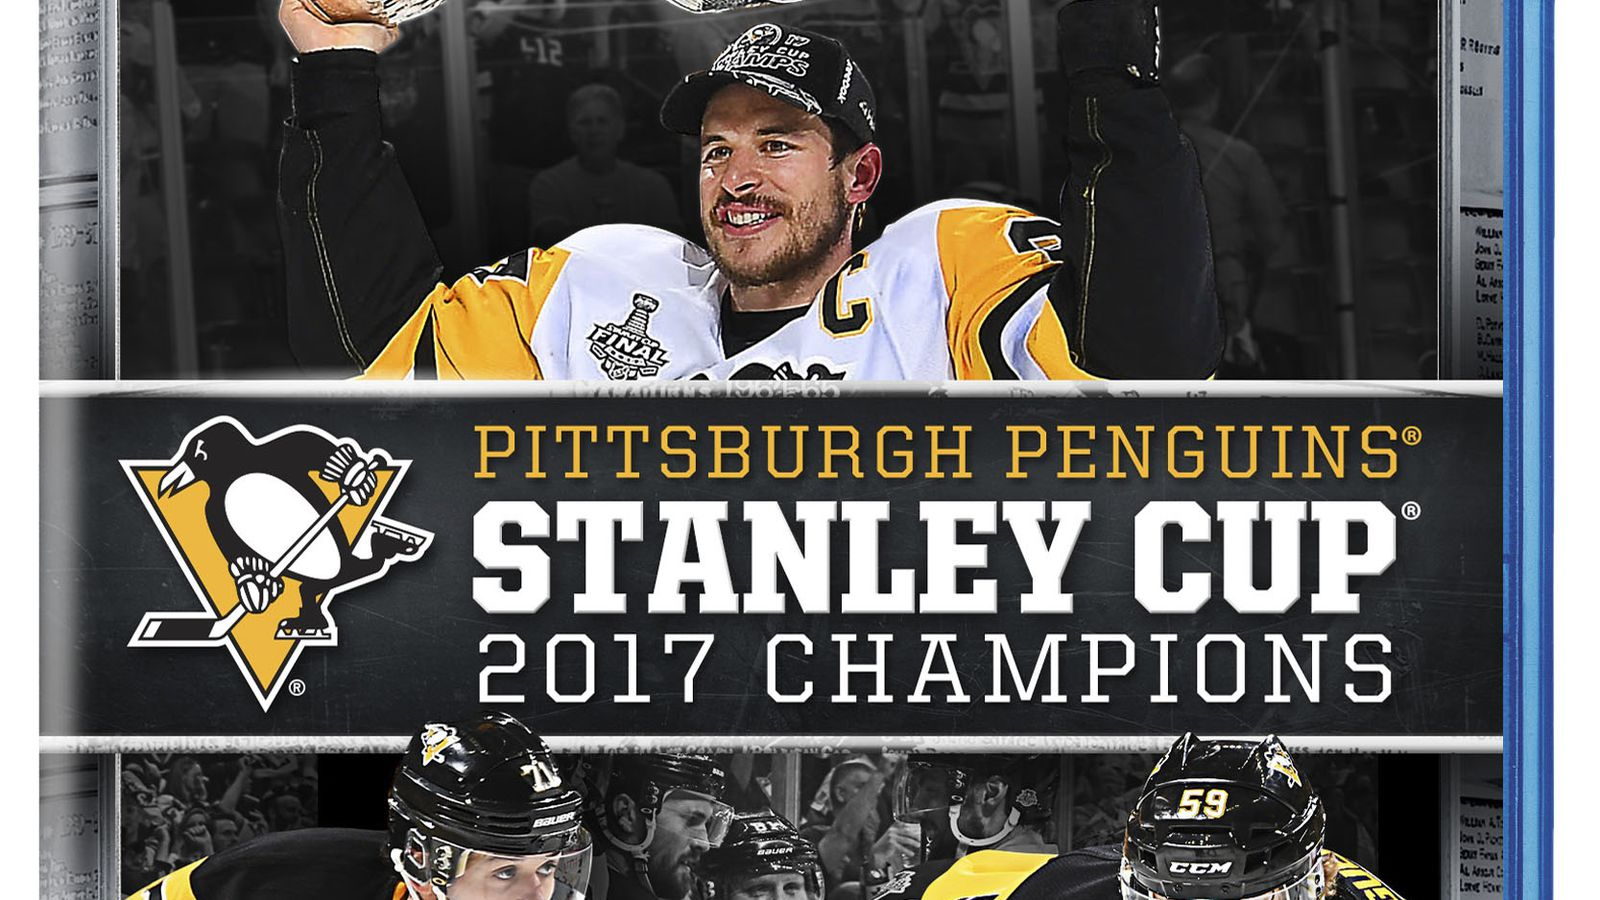 Stanly_cup_2017_penguins_cover.0